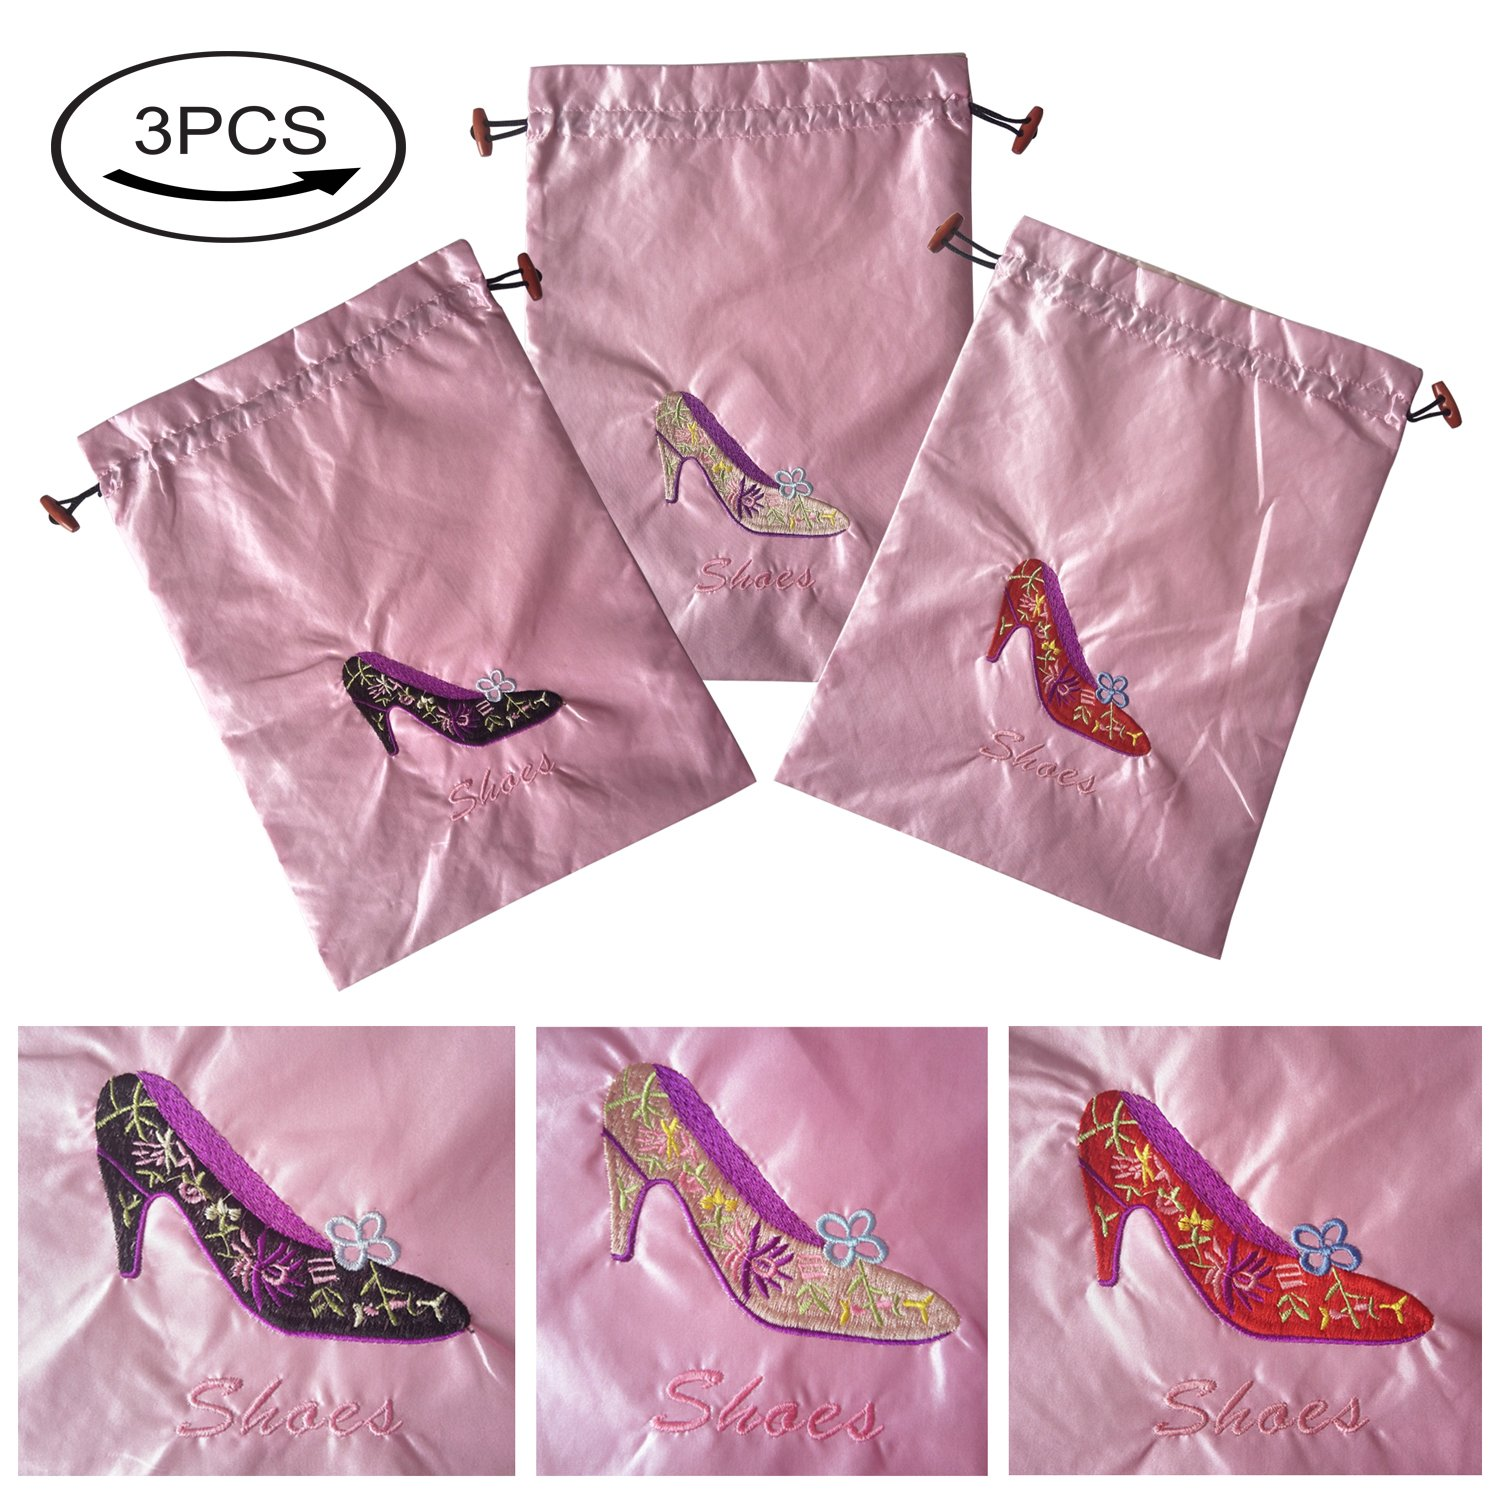 Gold Fortune 3 Packs 10.5'' x 14'' (L x W) Embroidered Silk Jacquard Travel Lingerie and Shoes Bags with Drawstring Closure (Pink)